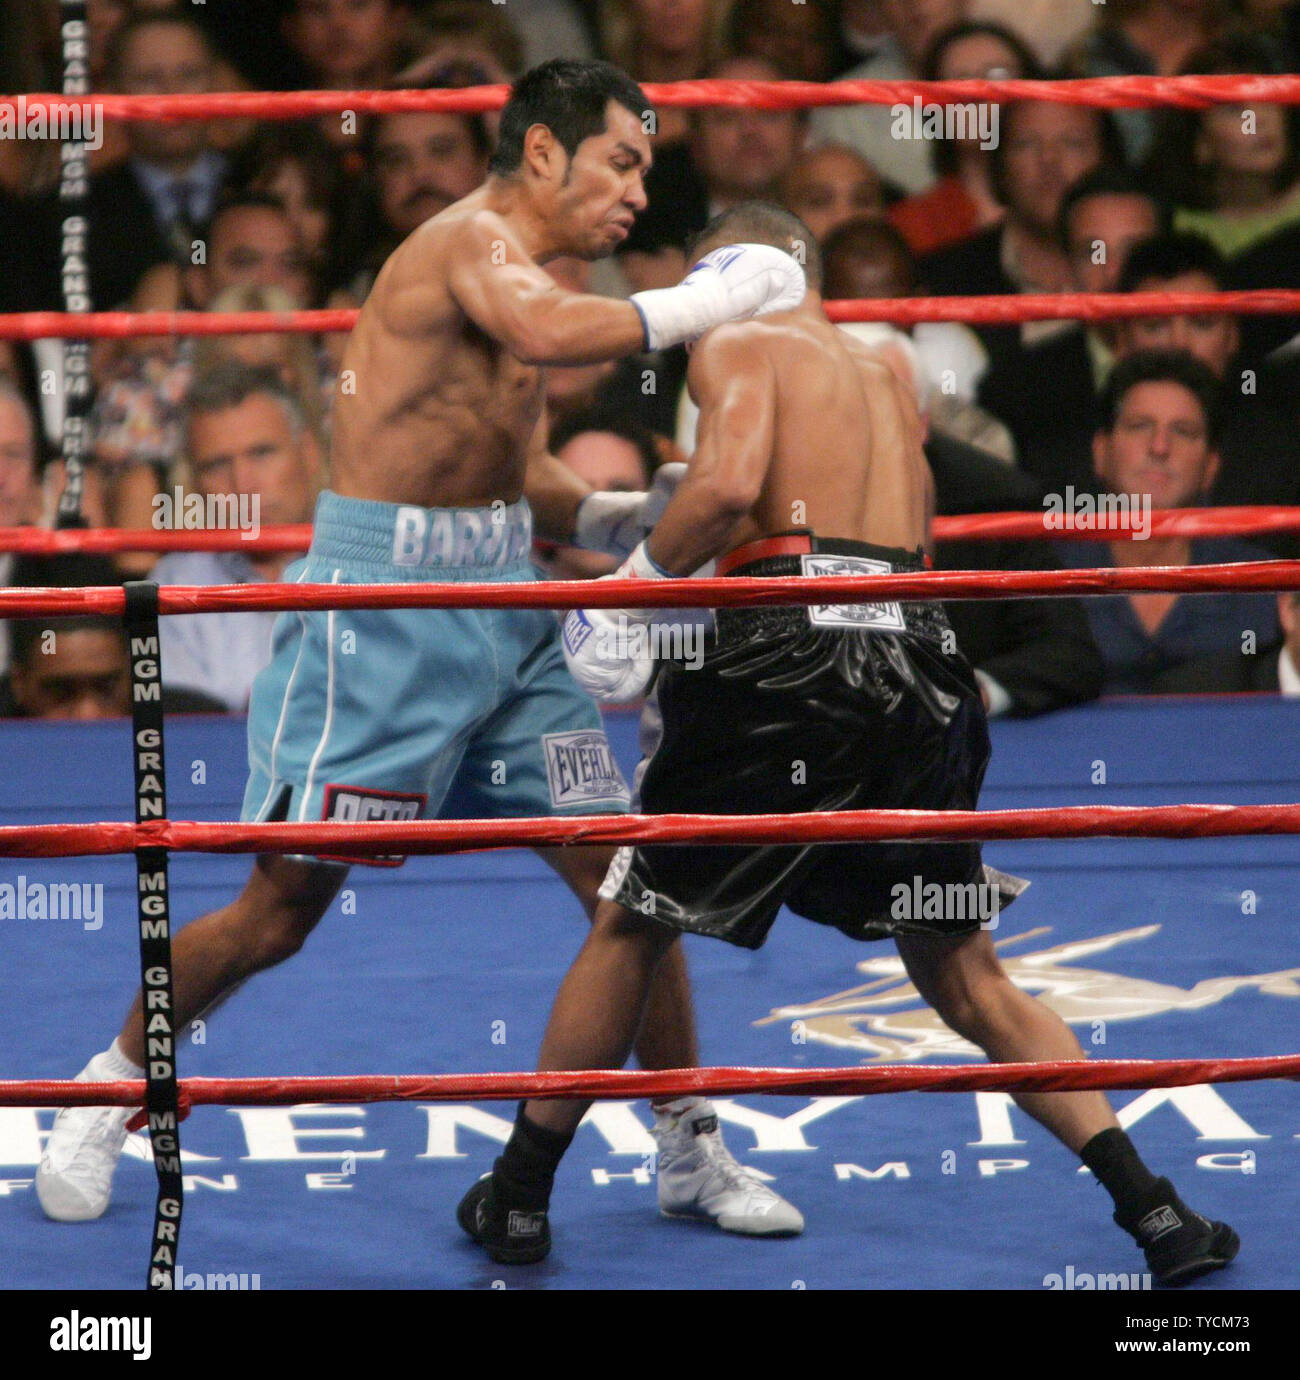 Marco Antonio  Barrera of Mexico City attacks Robbie Peden of Brisbane, Australia during their fight to consolidate the IBF and WBC world Super Featherweight titles. The fight was won by Barrera at MGM Grand in Las Vegas, NV, September 17, 2005. (UPI Photo/Roger Williams) - Stock Image